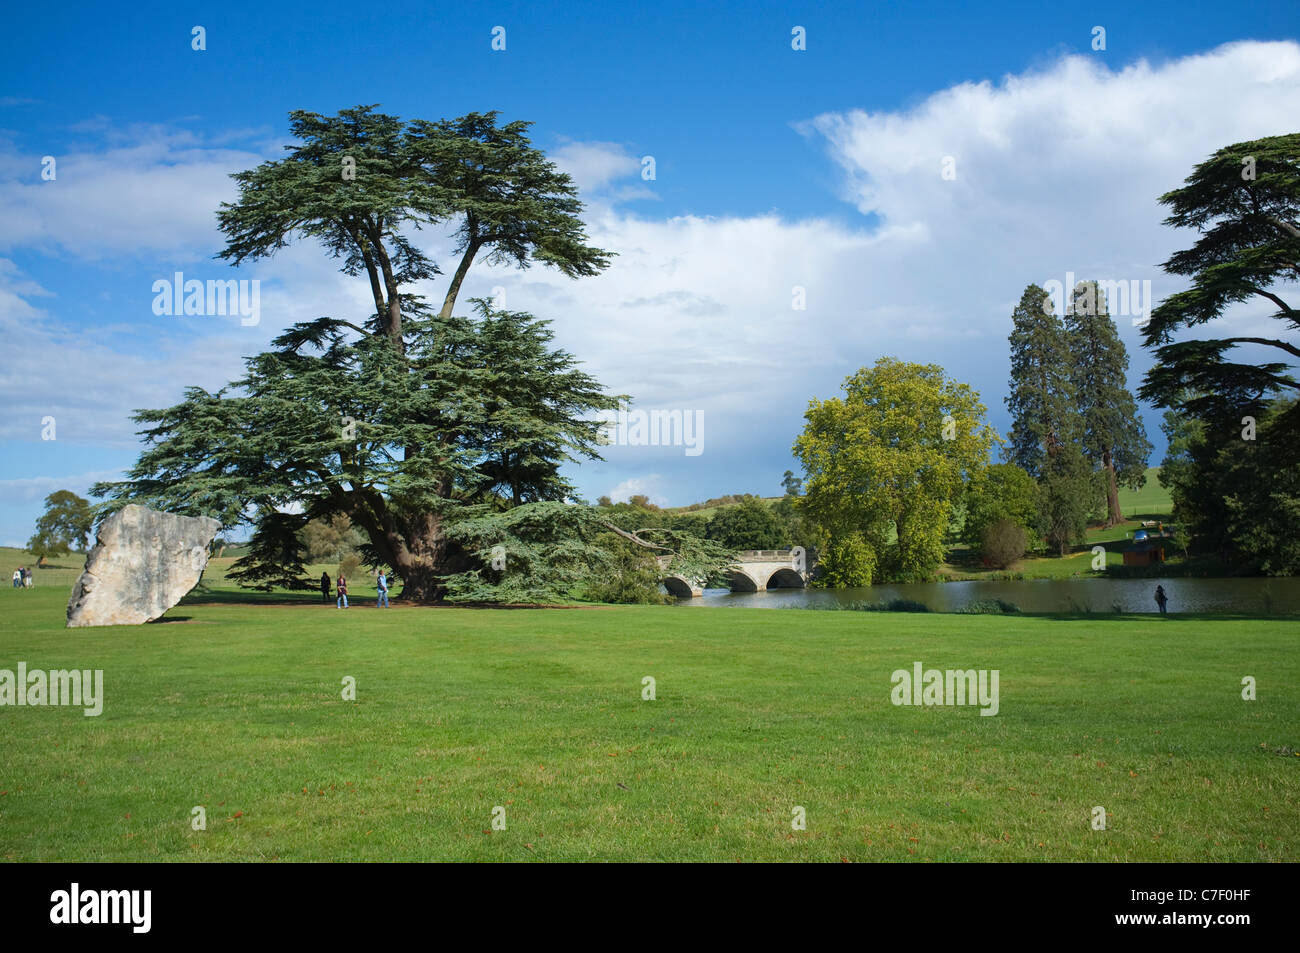 Compton Verney - a Capability Brown designed landscape with 18thC bridge of classical design by Georgian Architect Robert Adam. Stock Photo